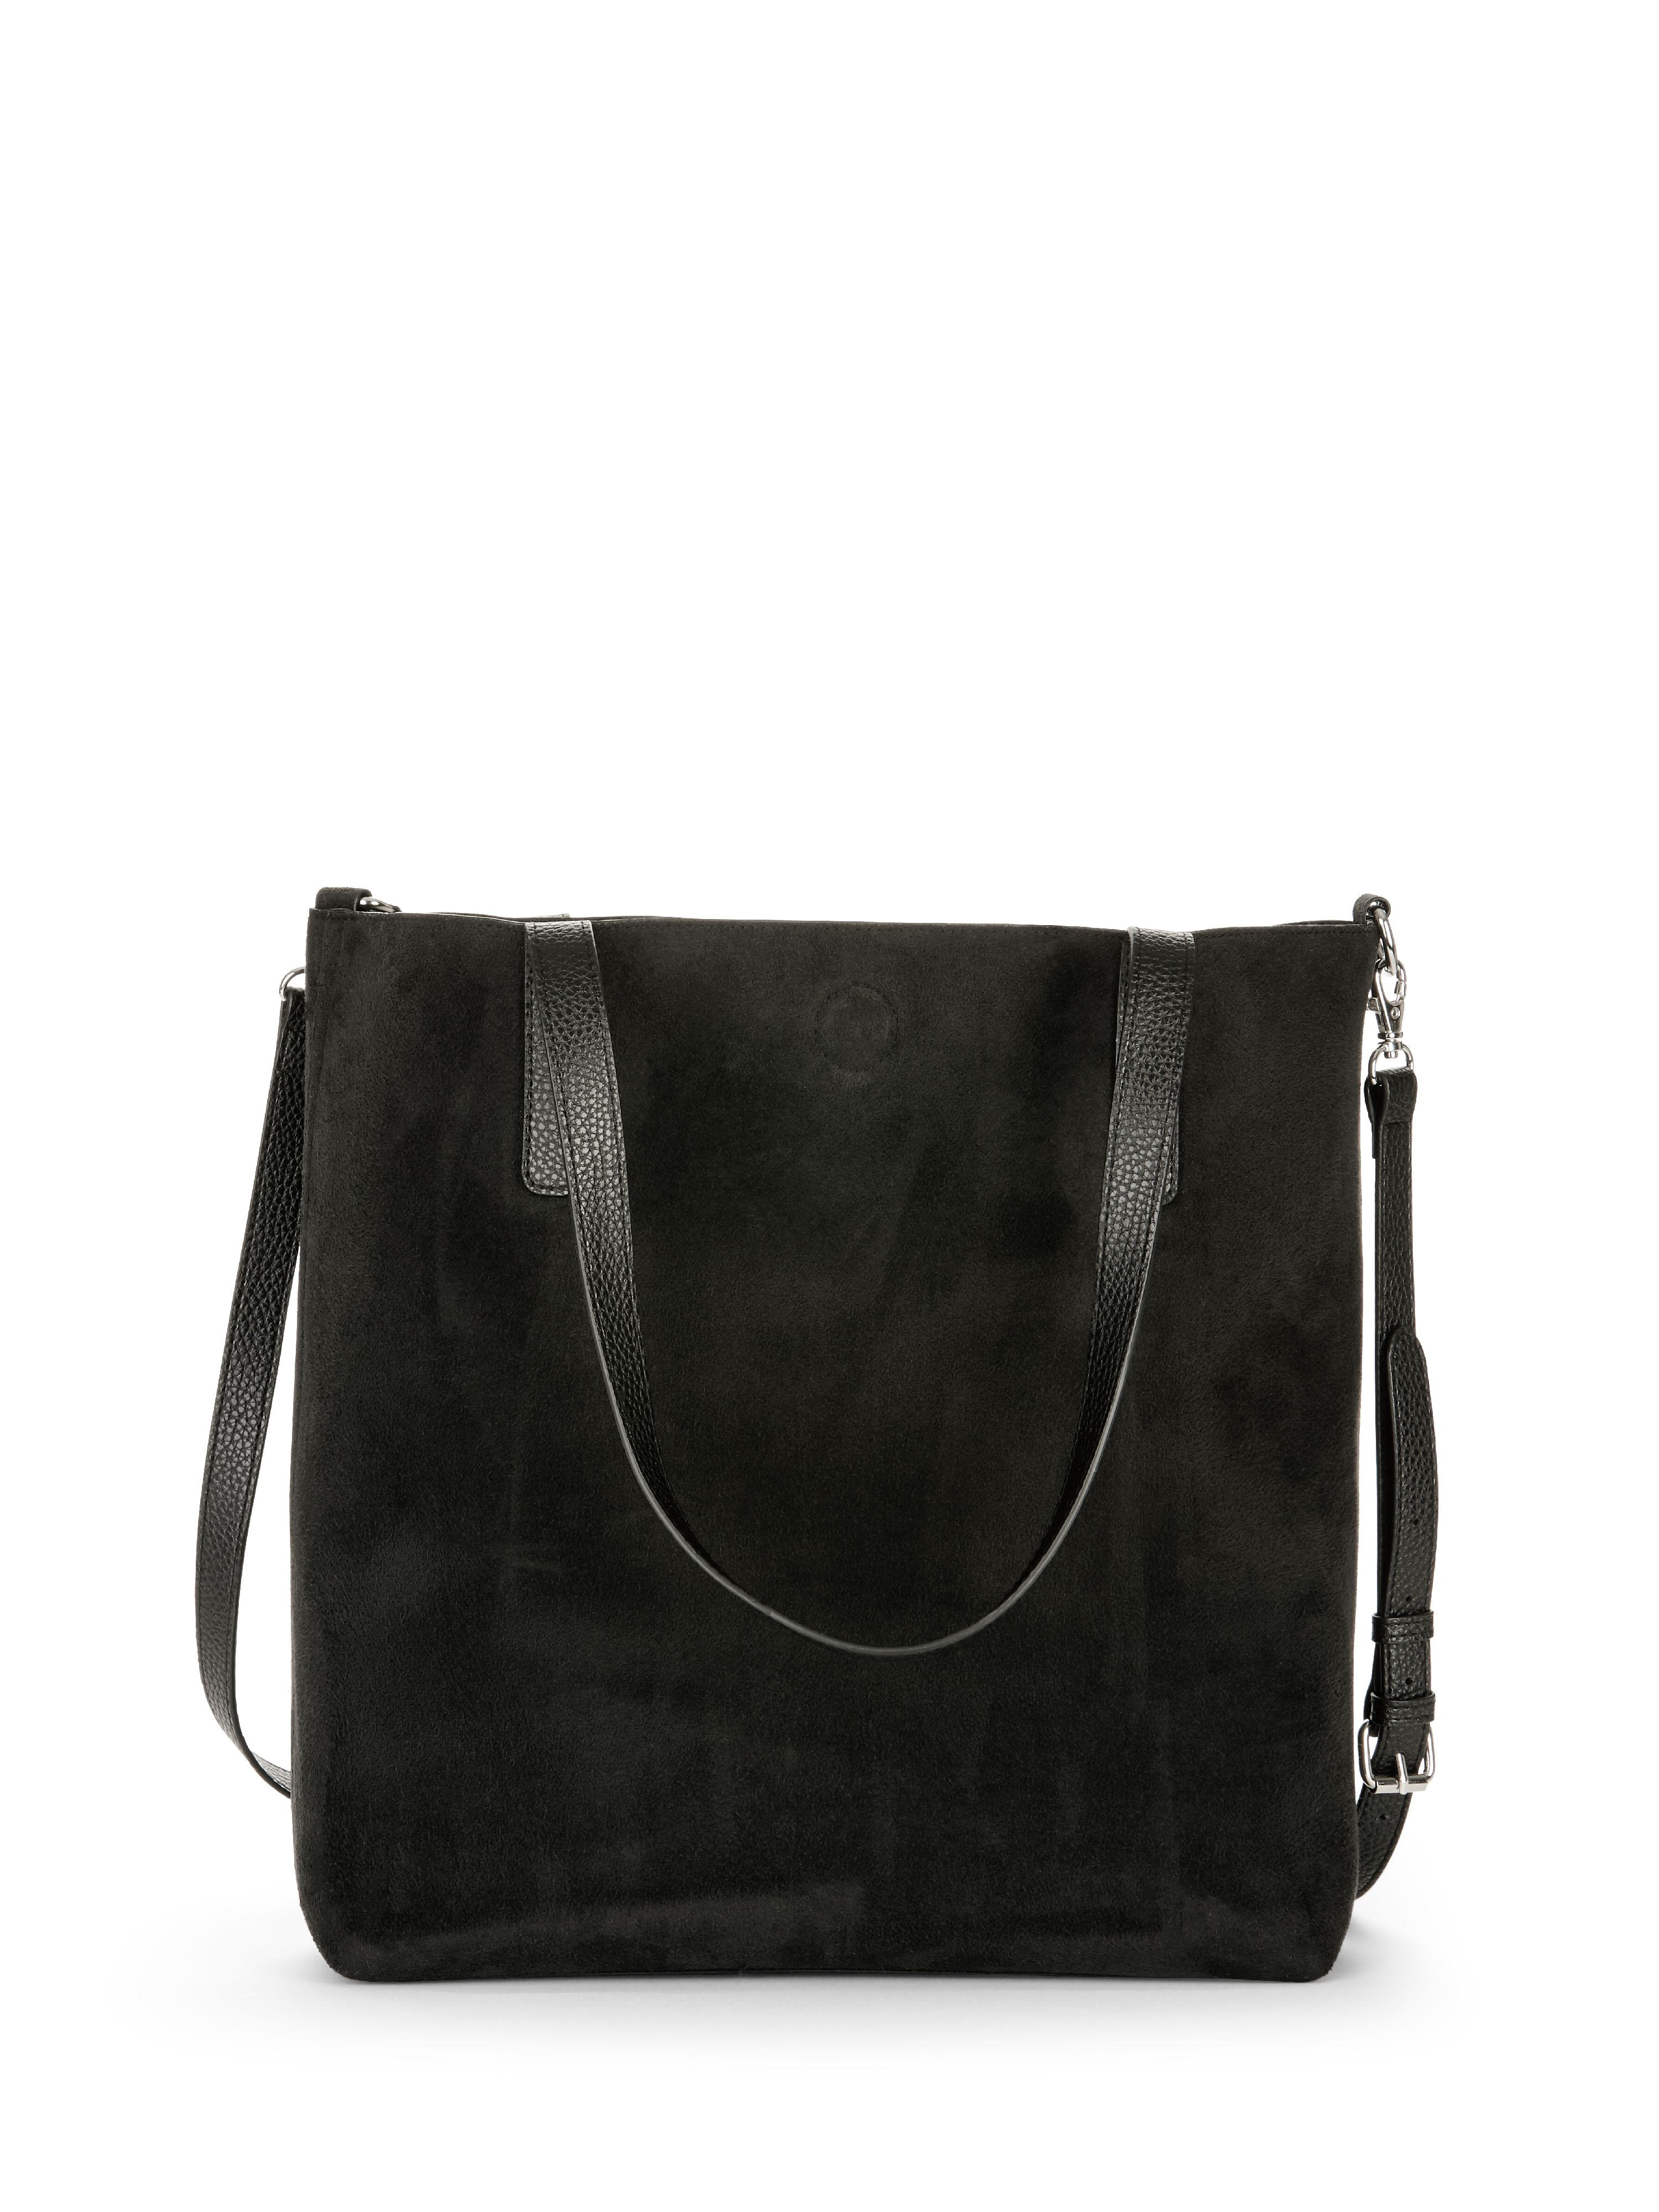 8eb79e13af Time and Tru - Time and Tru Leigh North South Reversible Tote with Pouch -  Walmart.com